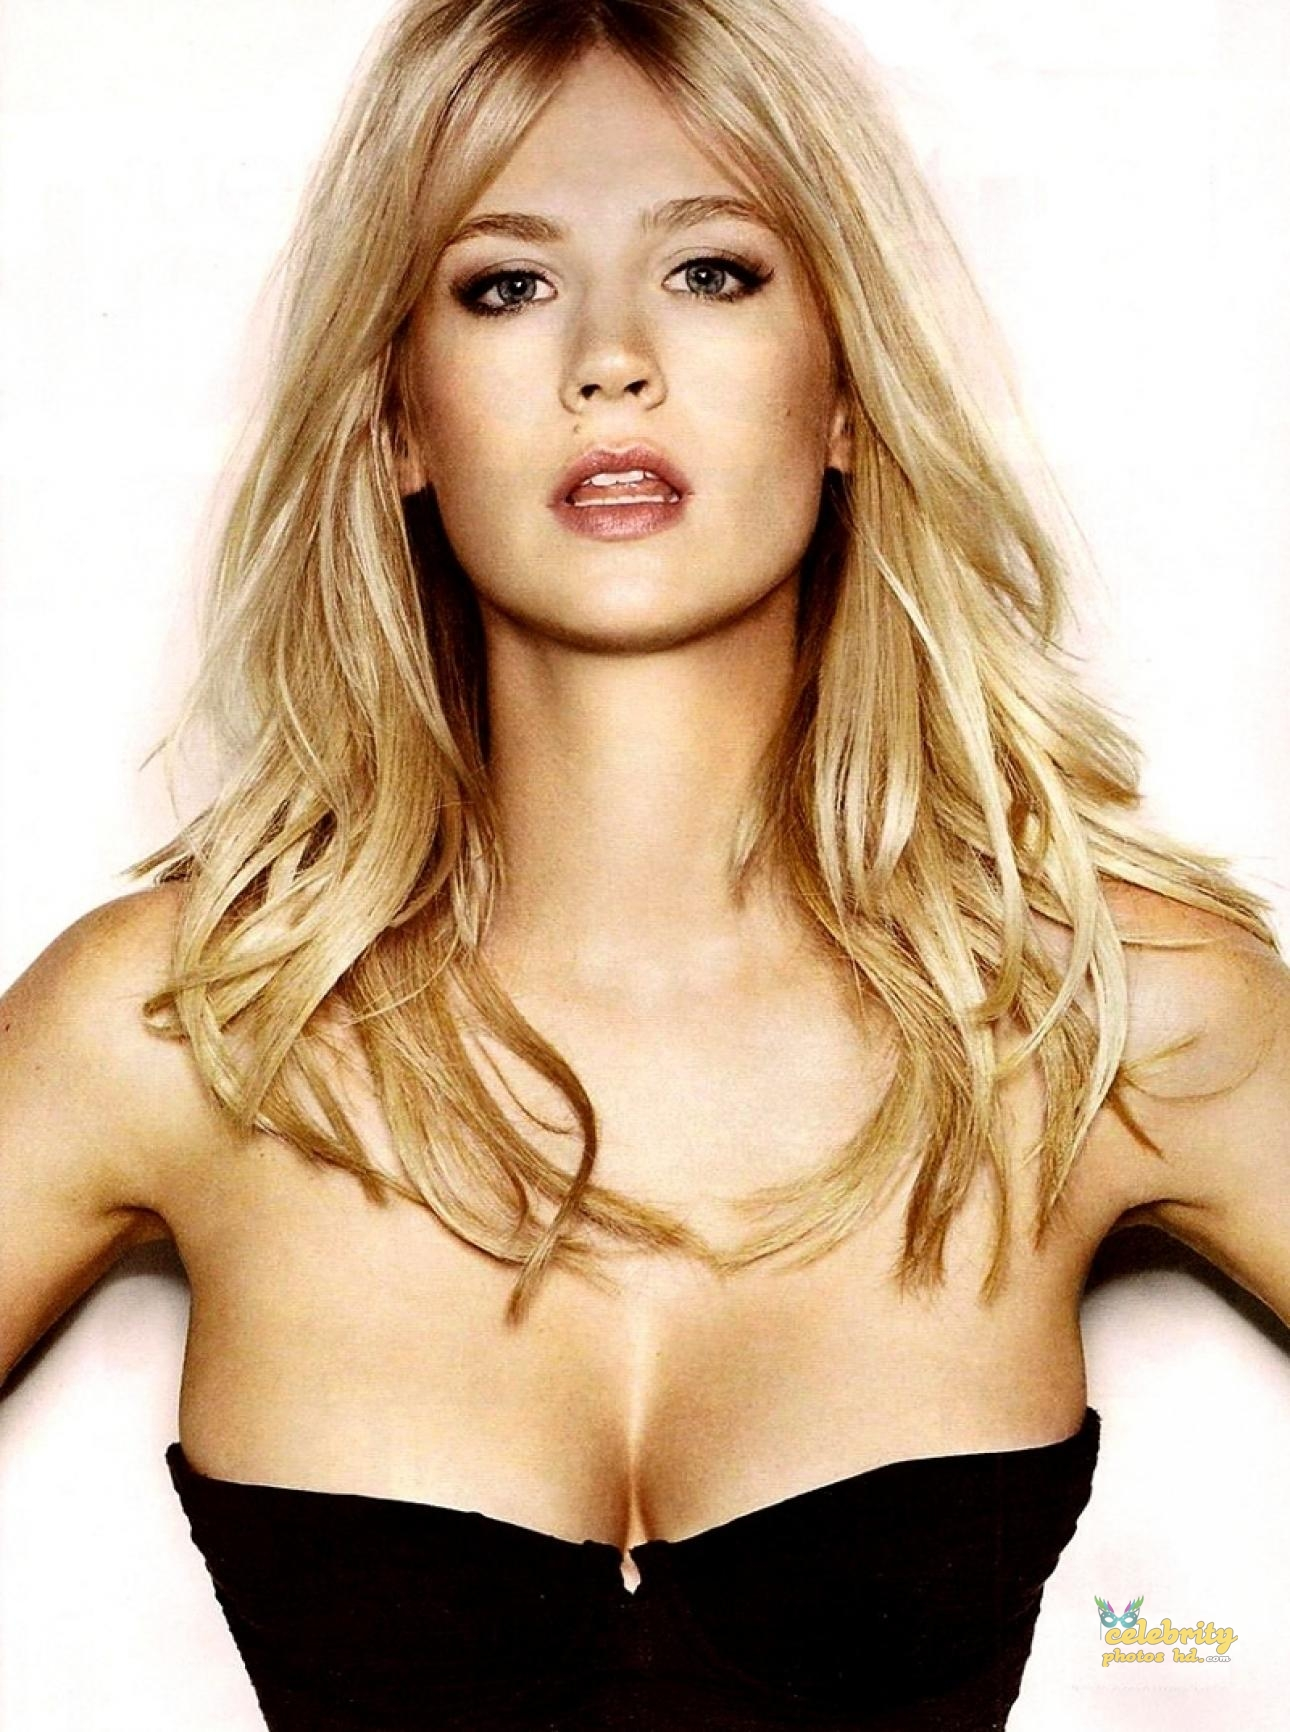 Hollywood Actress January Jones Top 10 Unseen Photo (3)